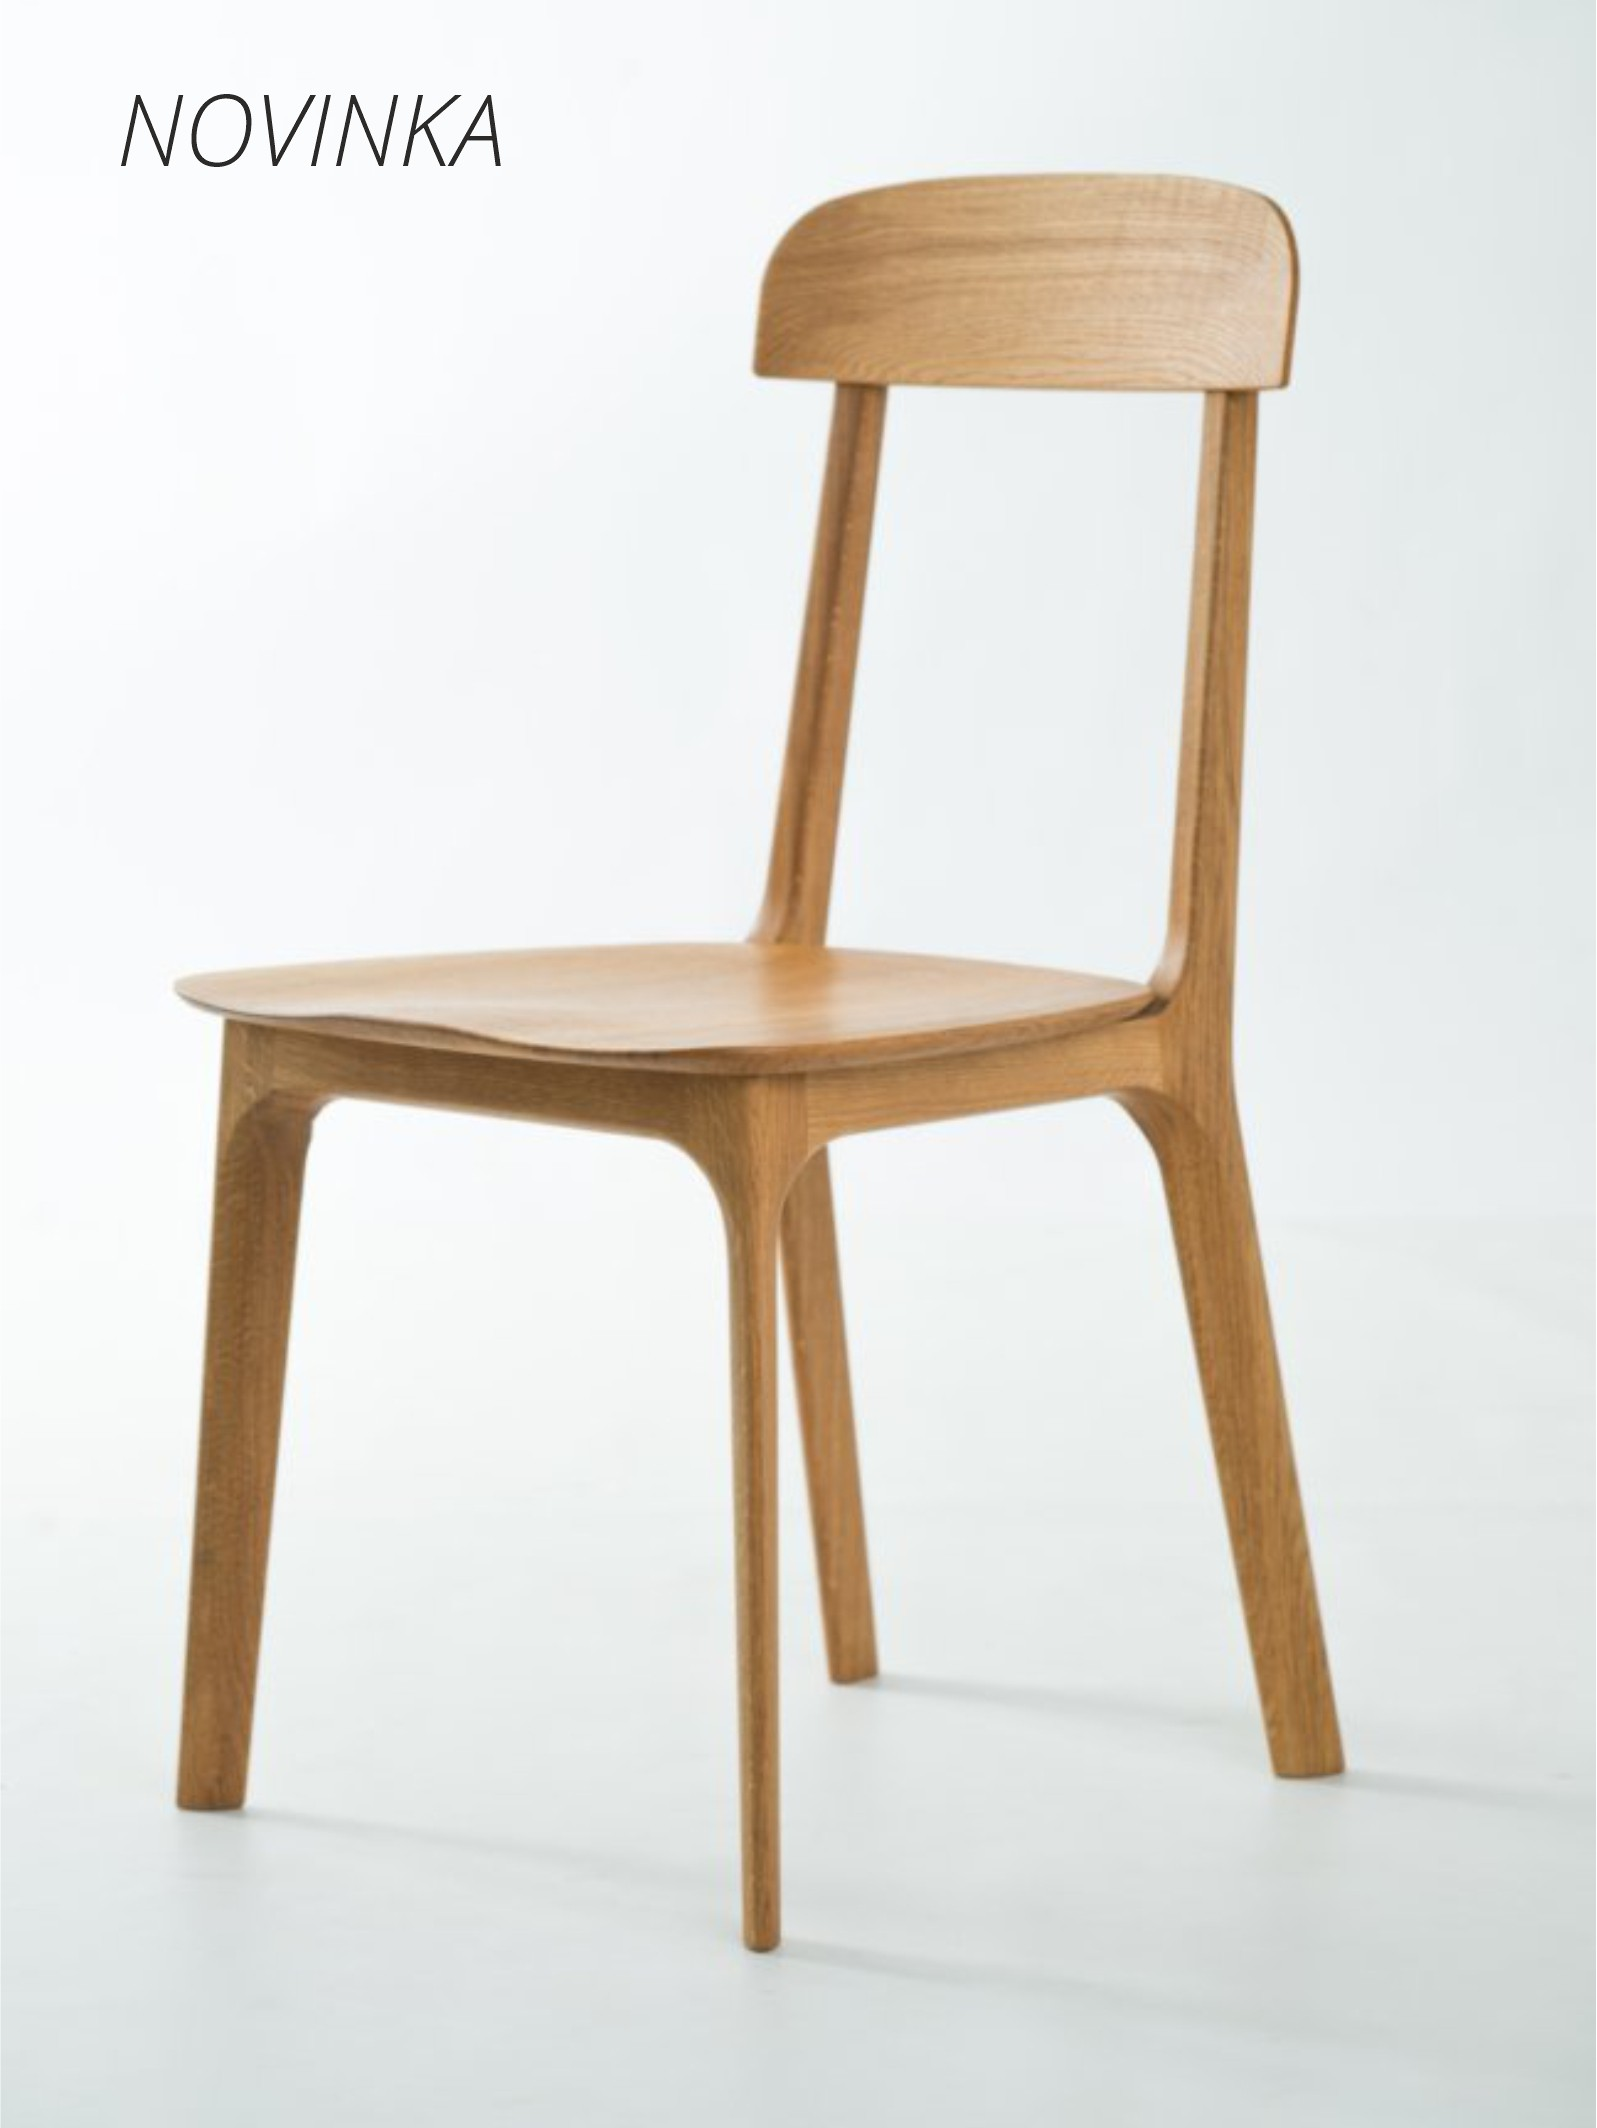 ELICA CHAIR WHOLLY WOODEN